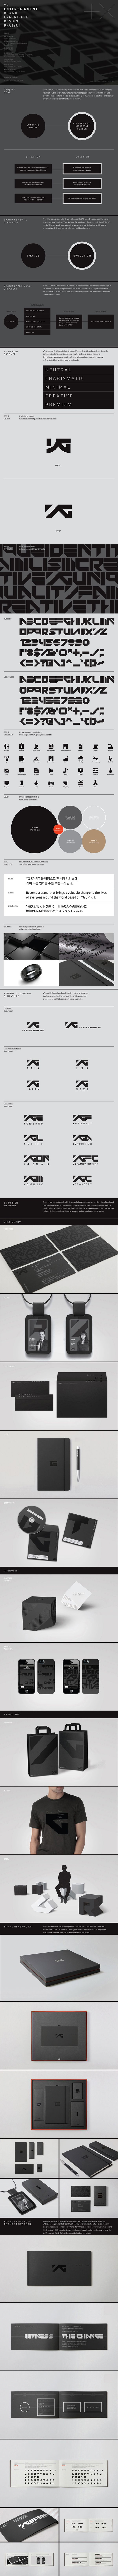 YG ENTERTAINMENT Brand Identity Renewal | Designer: Plus X